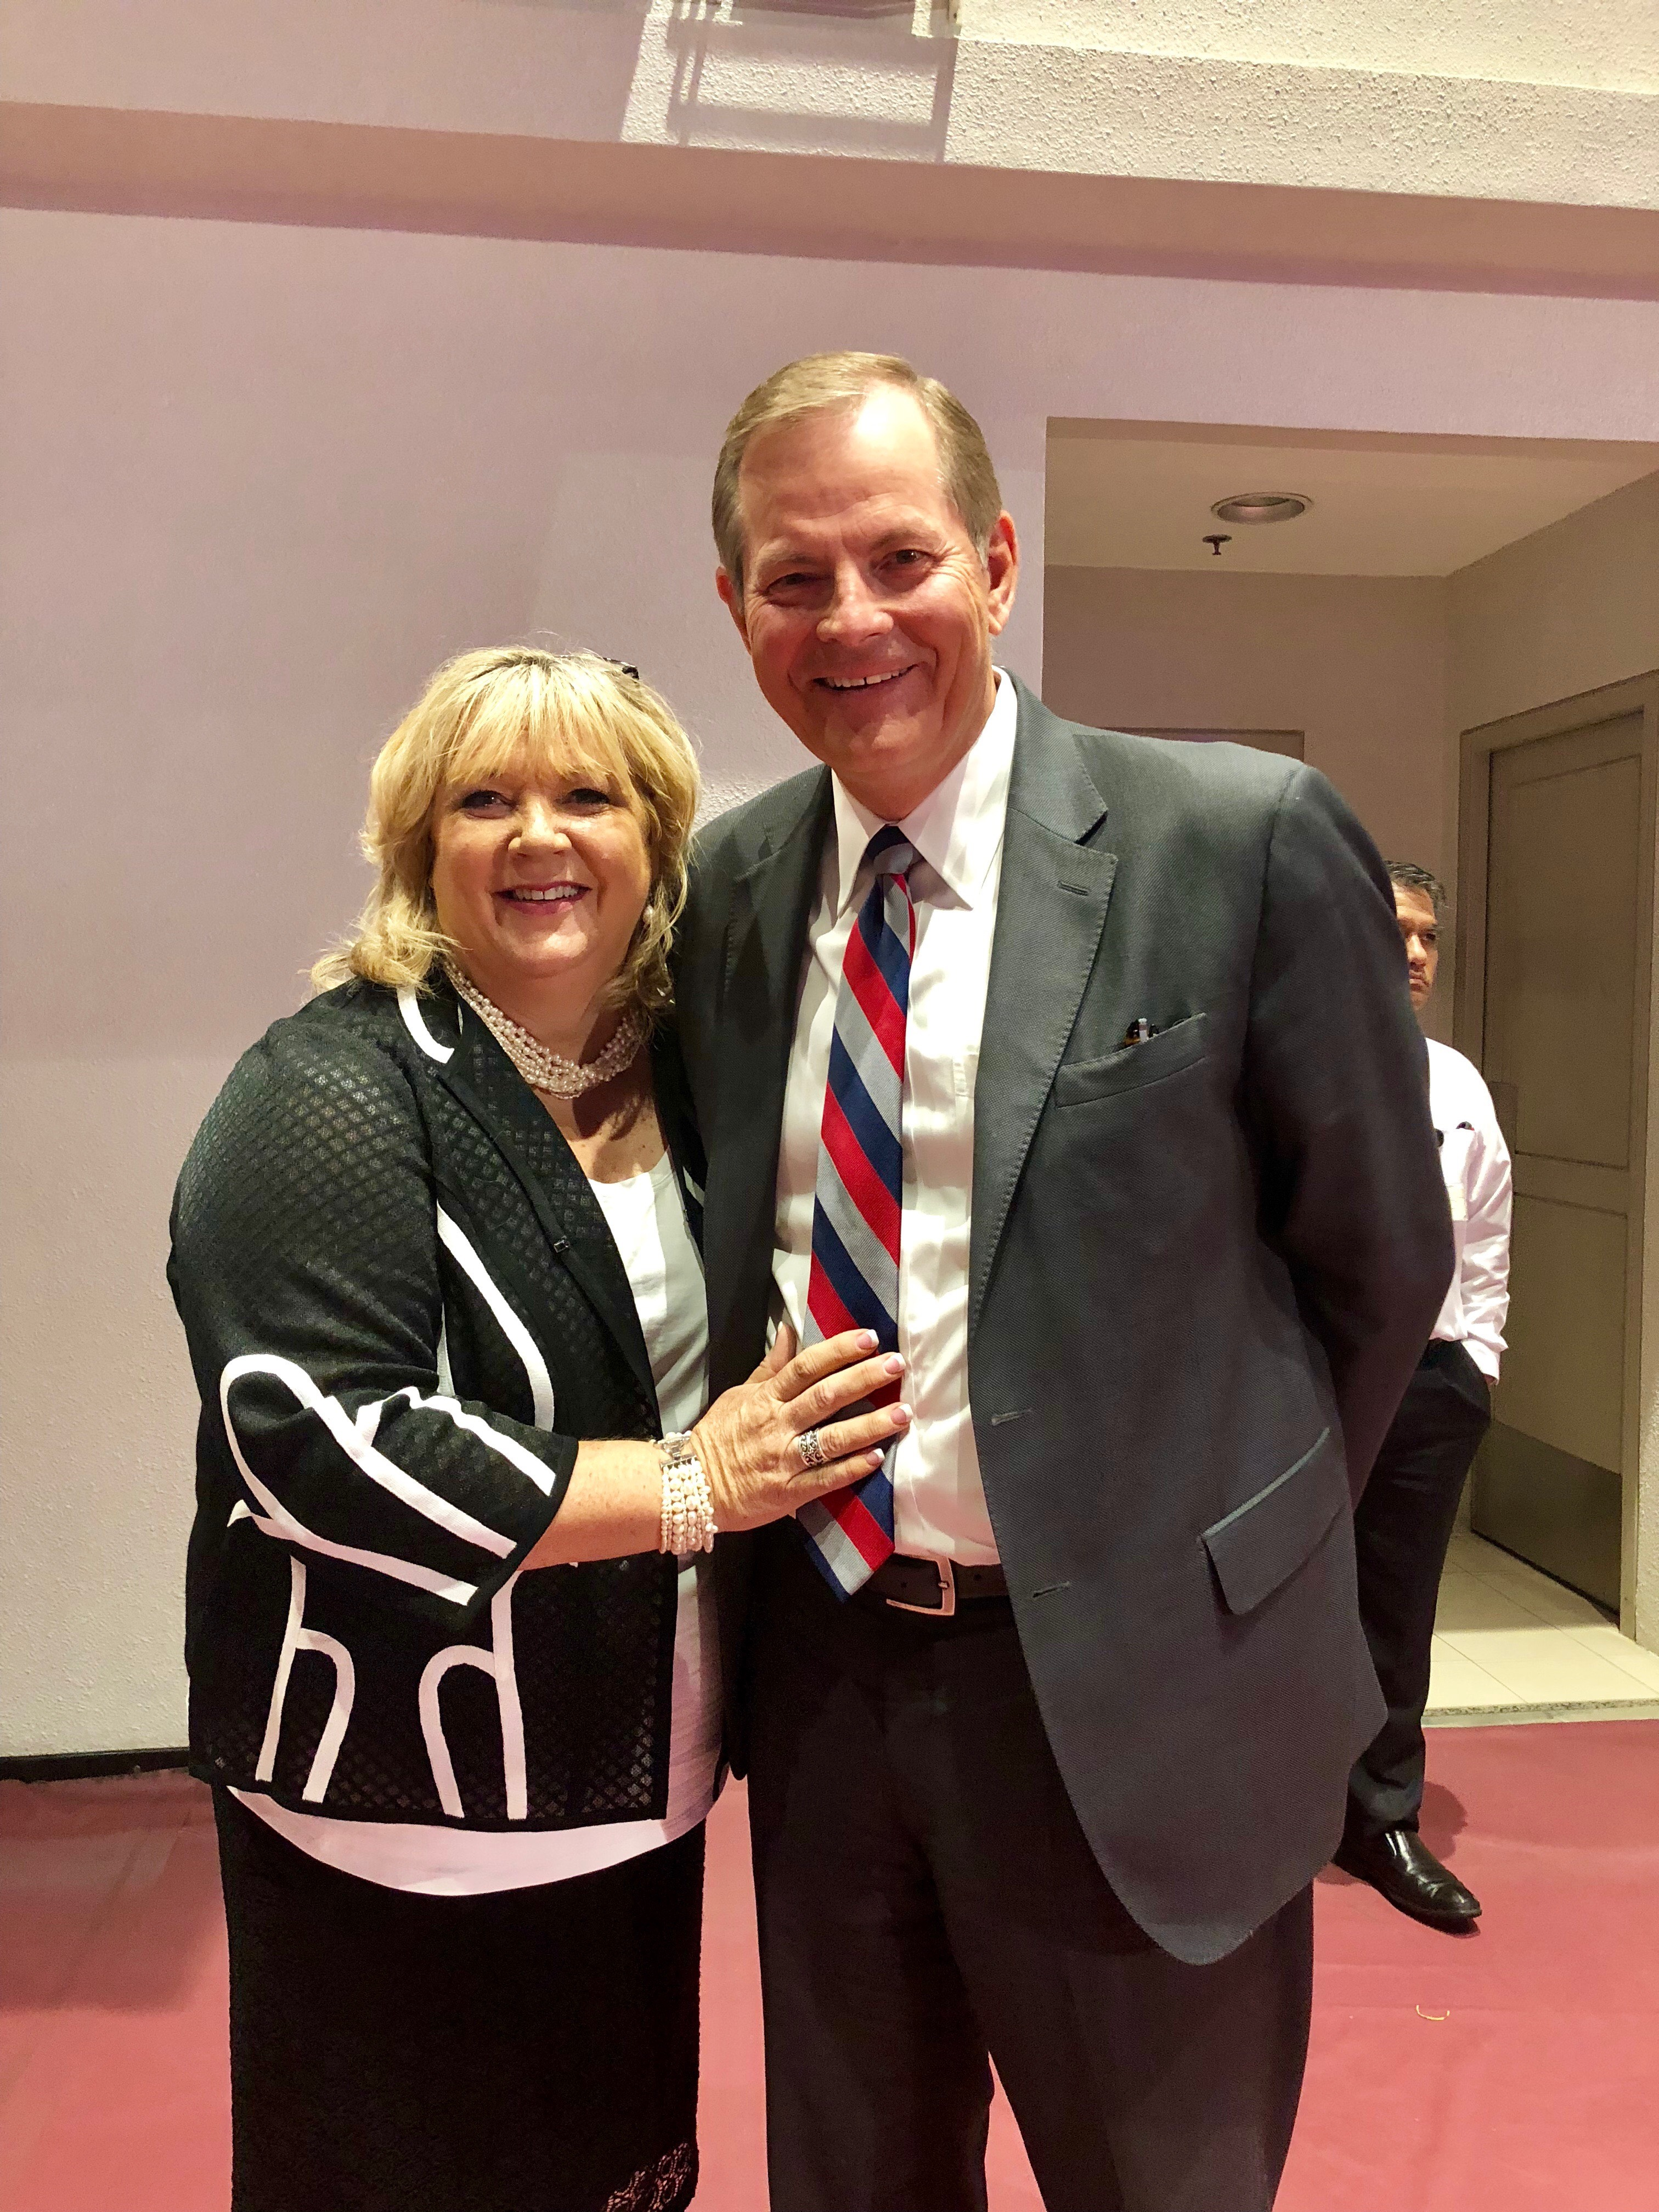 Sister Lesa Stevenson and Elder Gary E. Stevenson of the Quorum of the Twelve Apostles at the Face to Face event held in the Philippines on Aug. 11, 2018.